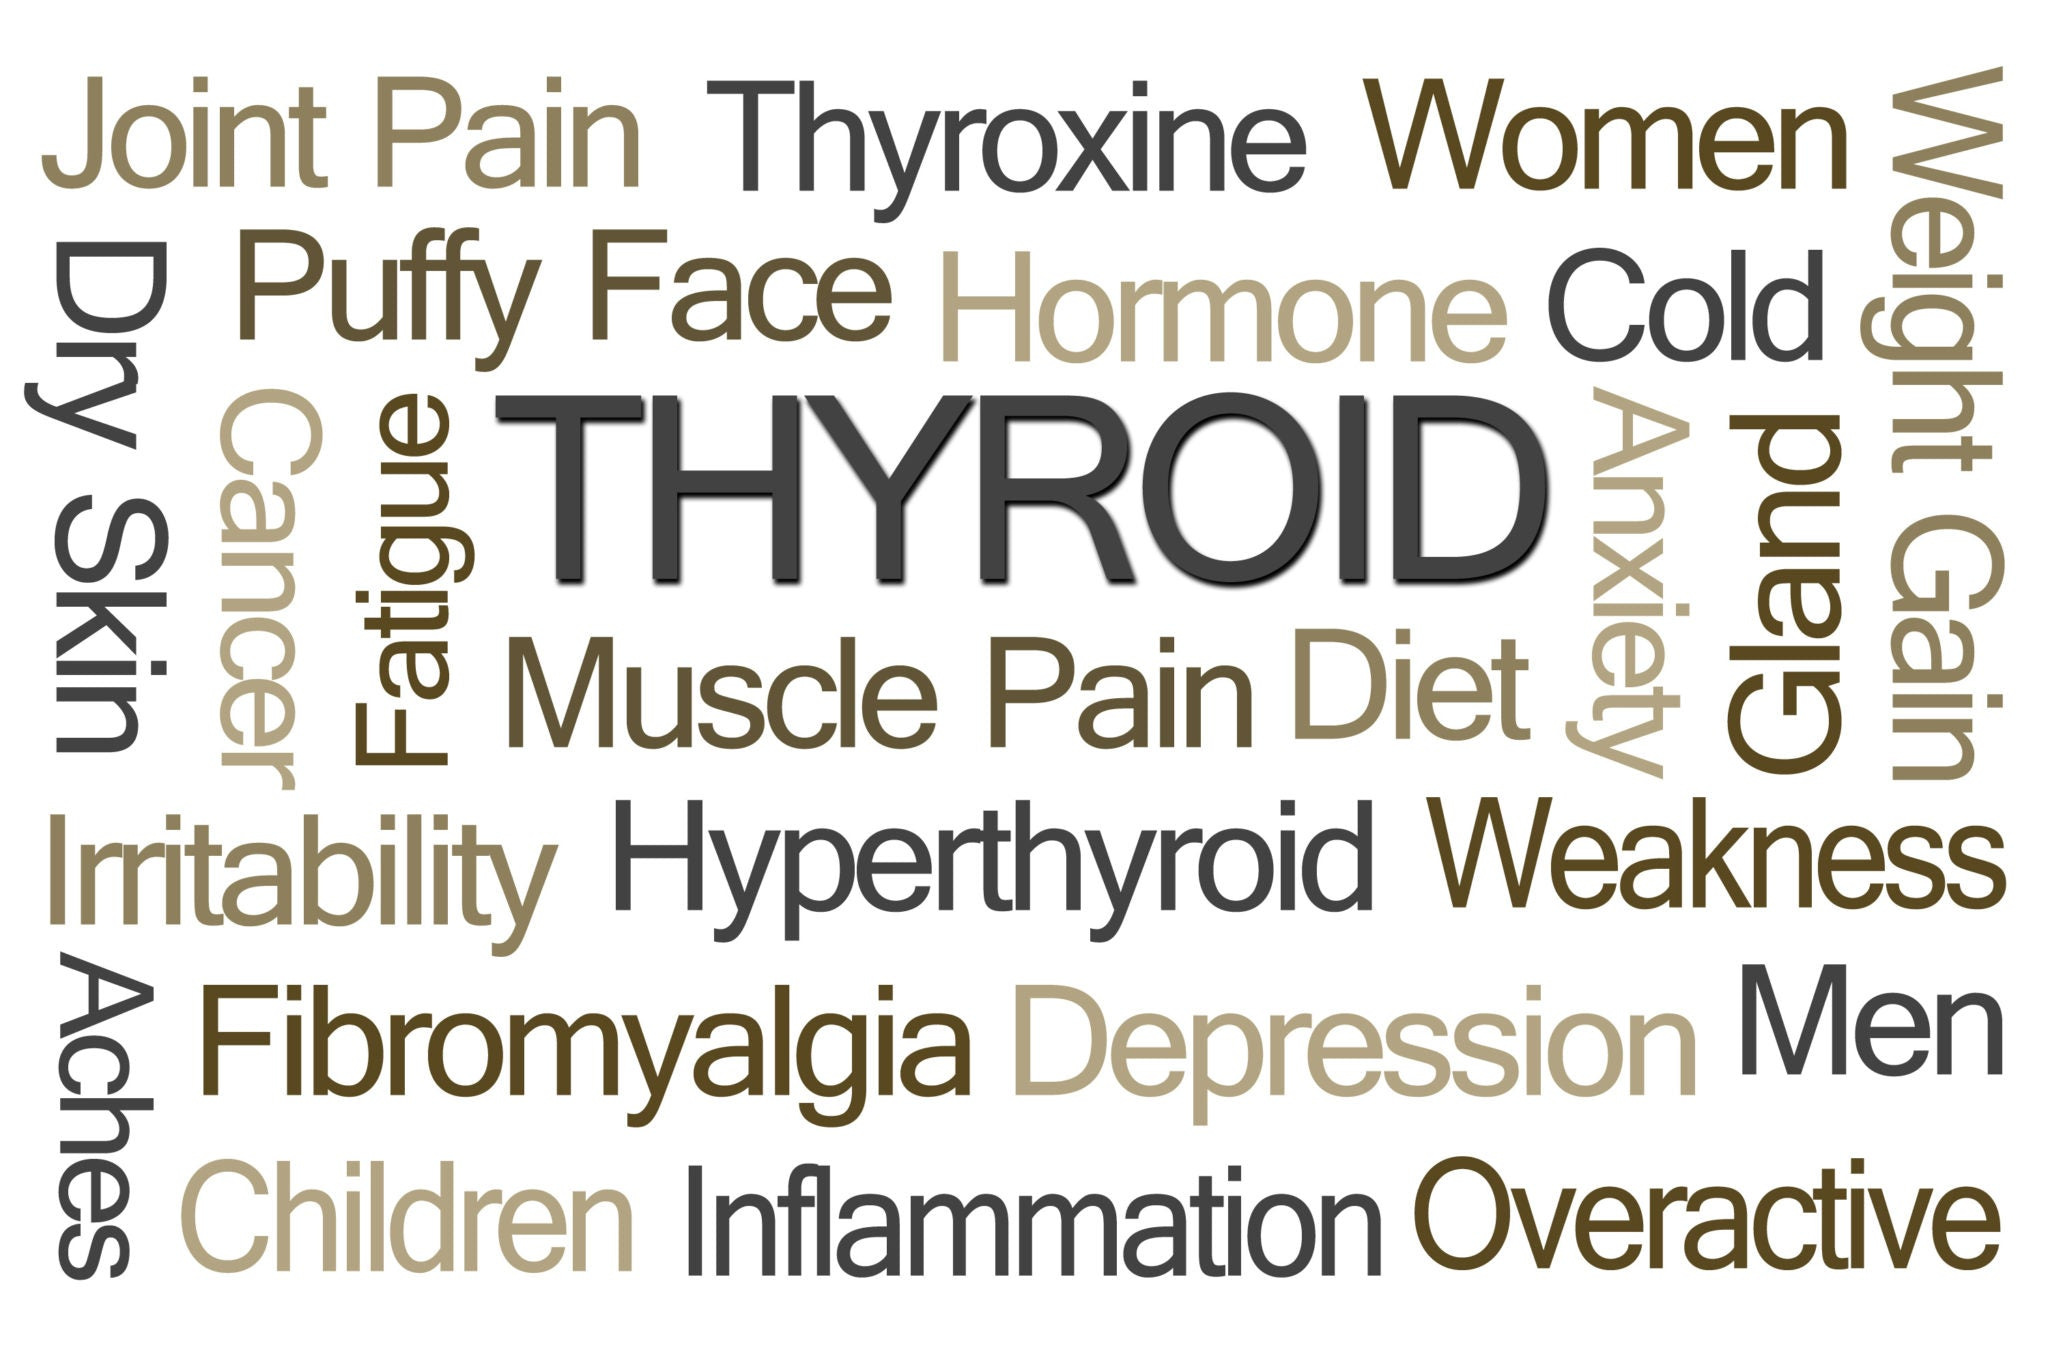 Thyroid Awareness Week - June 1st - 7th